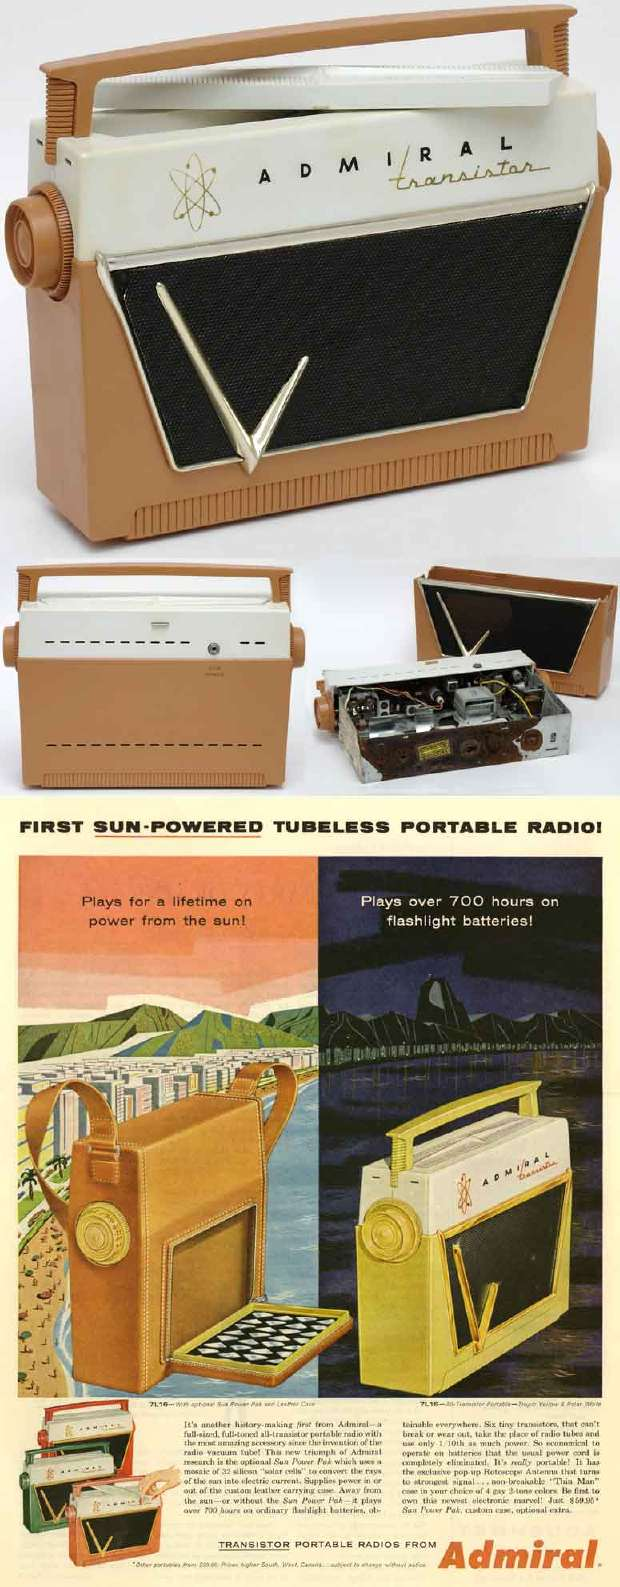 radio-a-faible-consommation-denergie/romadmiral-jpg.jpeg